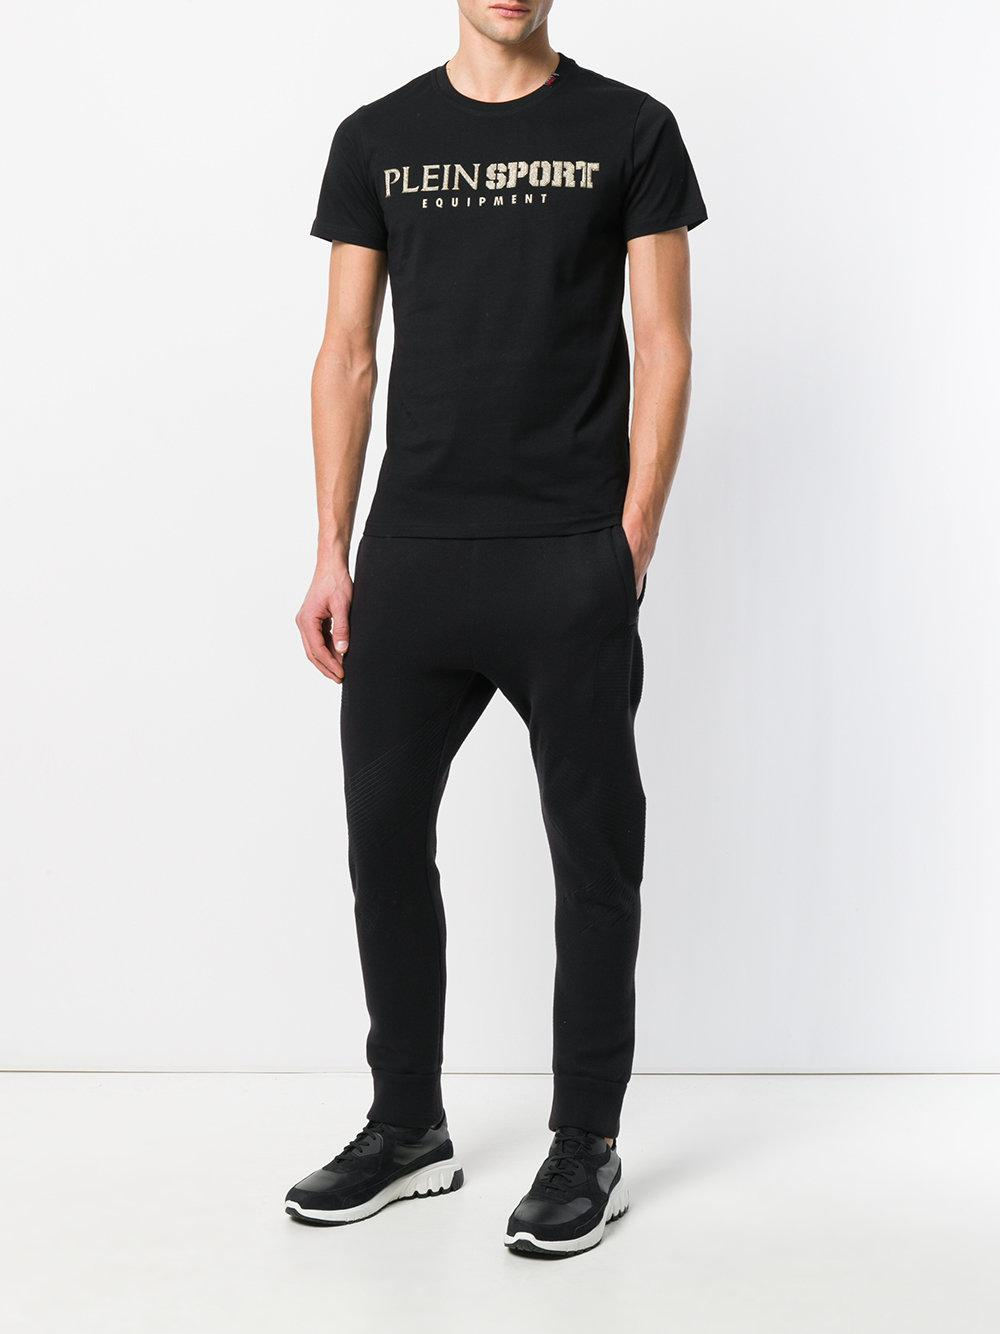 lyst philipp plein logo print t shirt in black for men. Black Bedroom Furniture Sets. Home Design Ideas